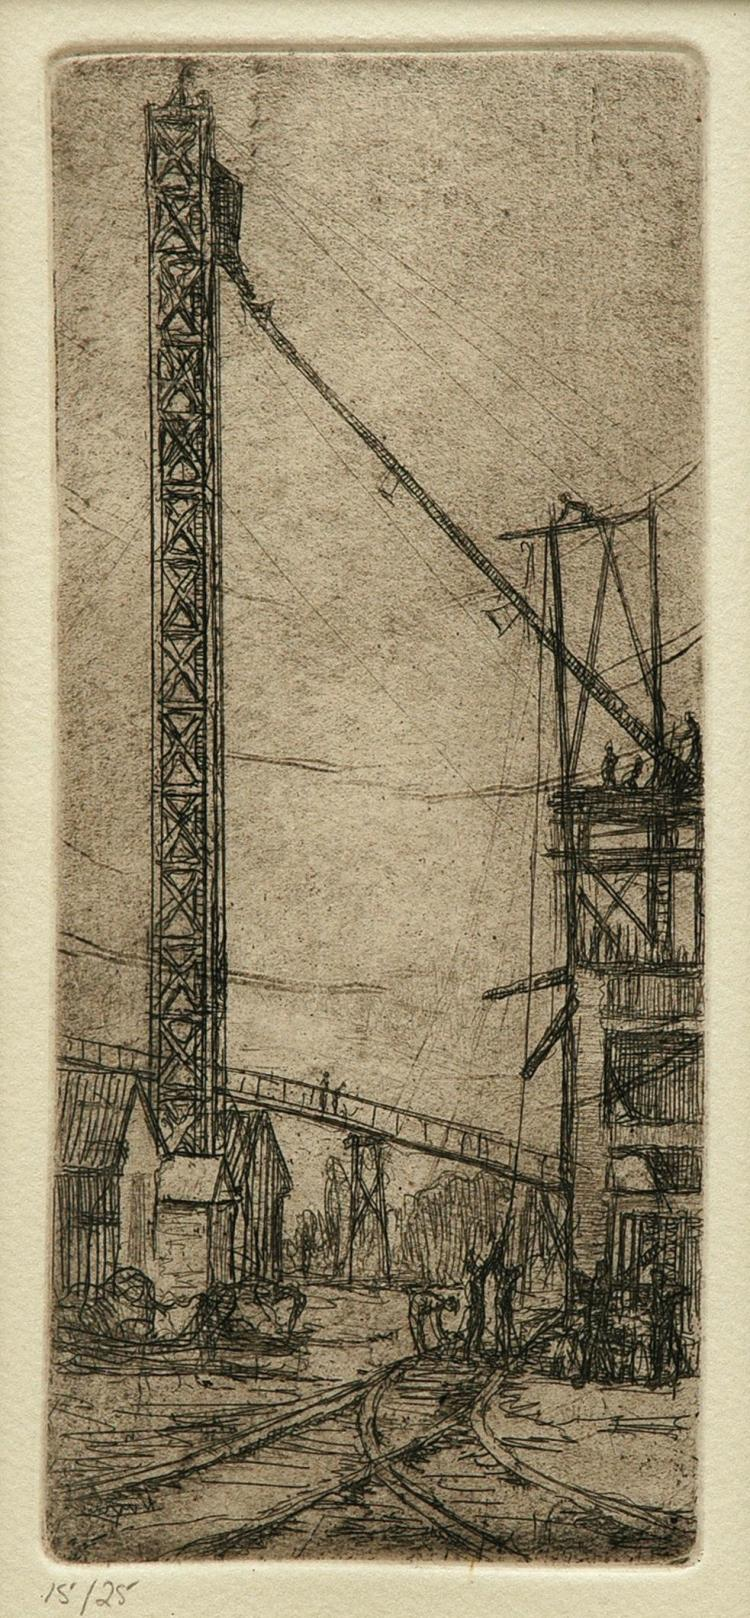 Jessie Traill (1881-1967) Untitled (View of a Mine Entrance) circa 1924 etching 15/25